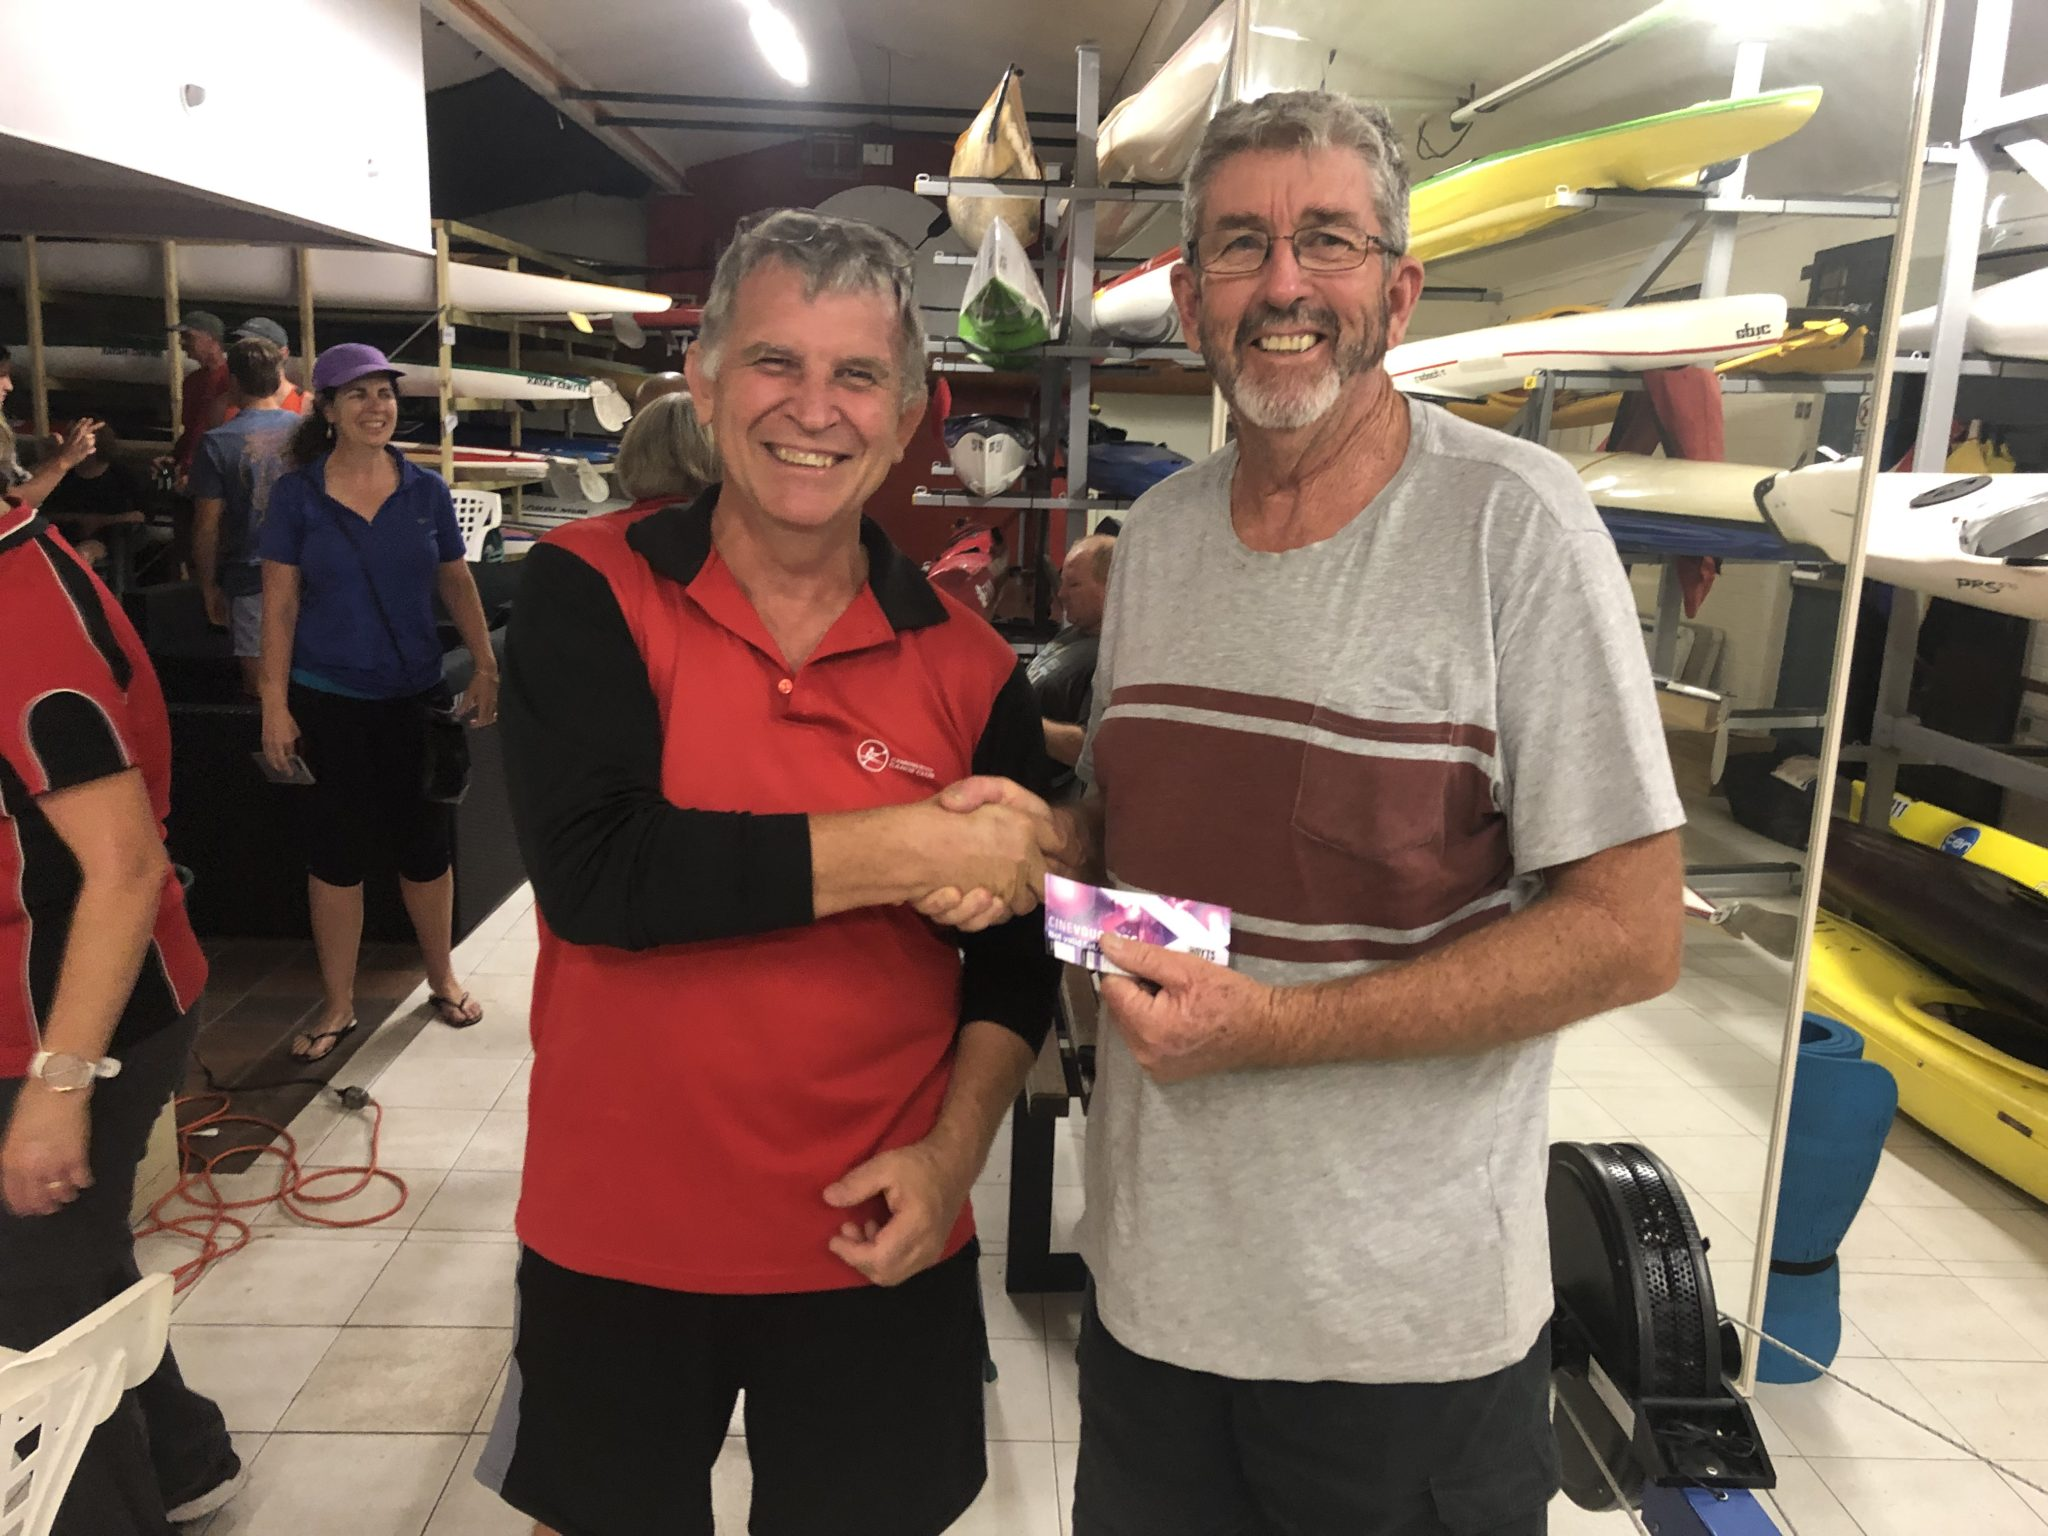 Tuesday 26th March 2019 : Tonight's photo shows club member David Brown presenting David Griffiths with the winners movie voucher.